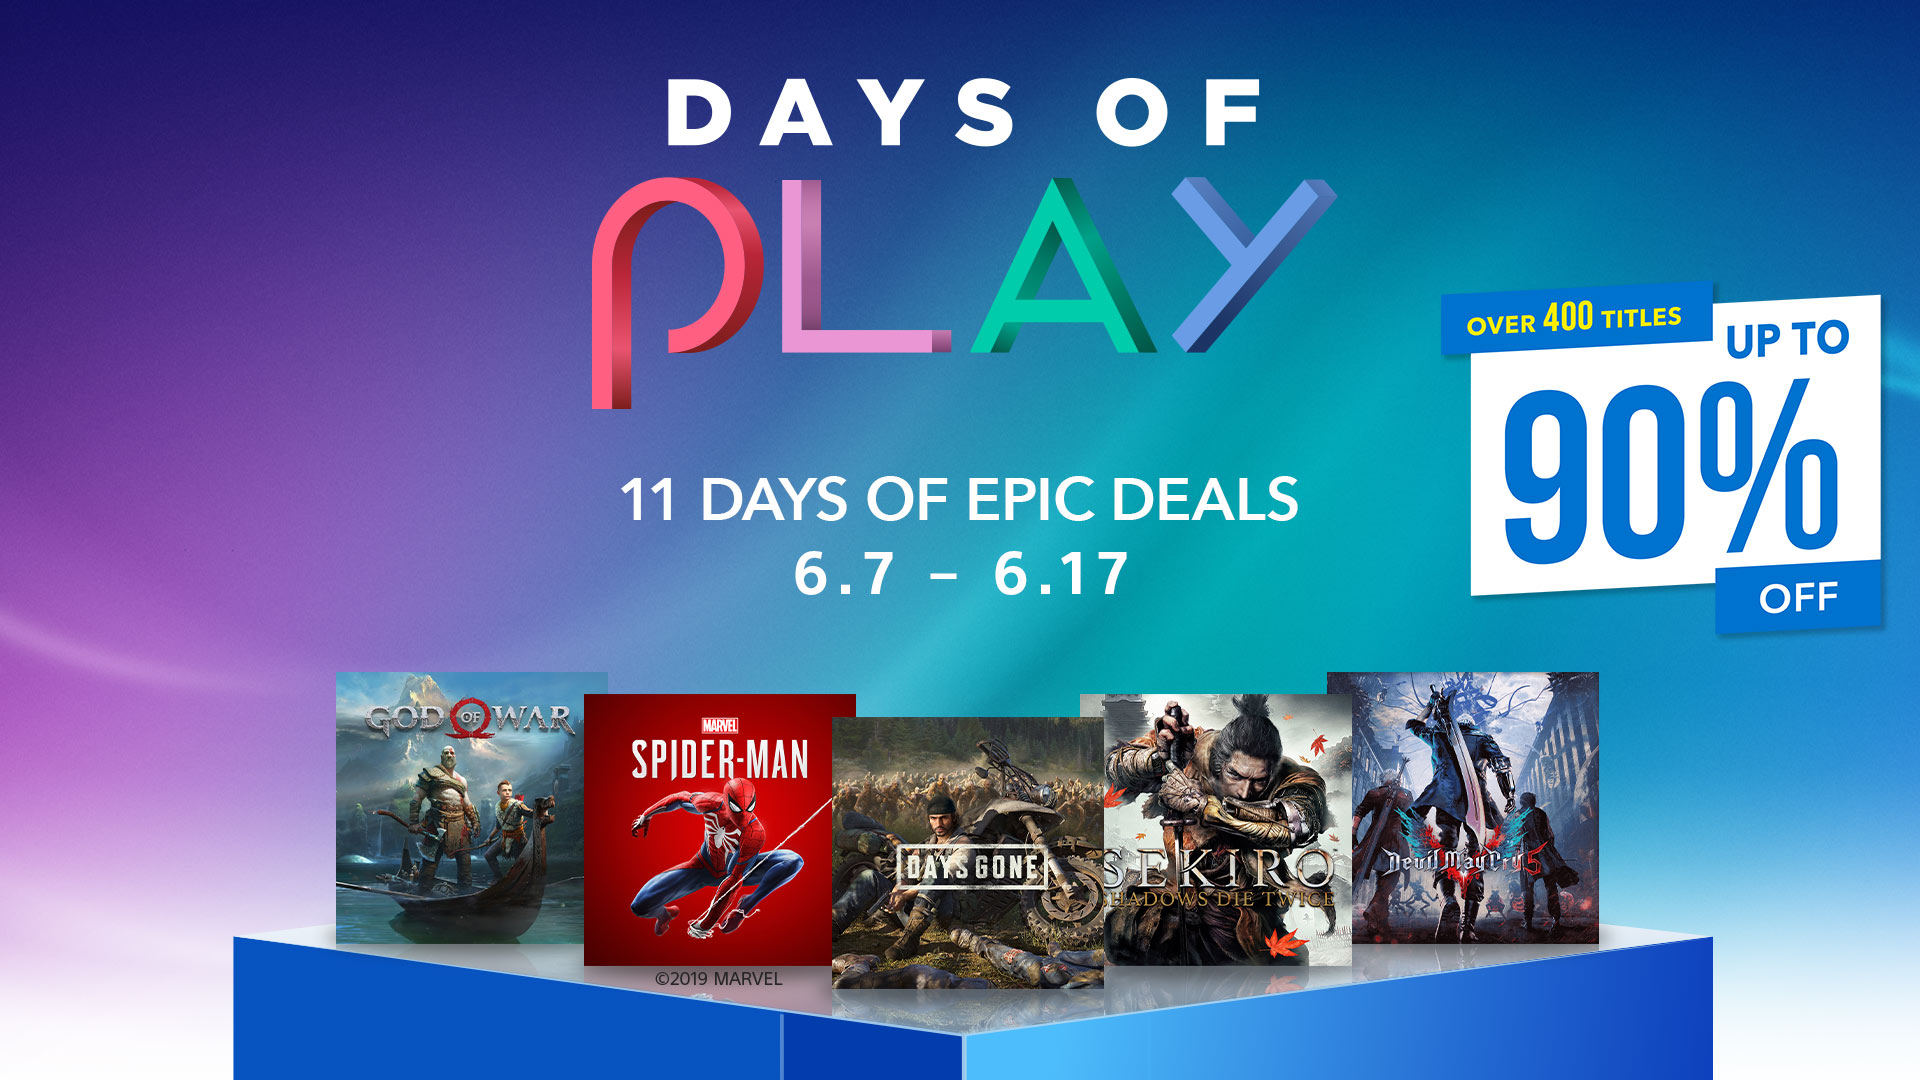 PlayStation™ Days of Play Offers Up to 90% Off on Selected Titles 6